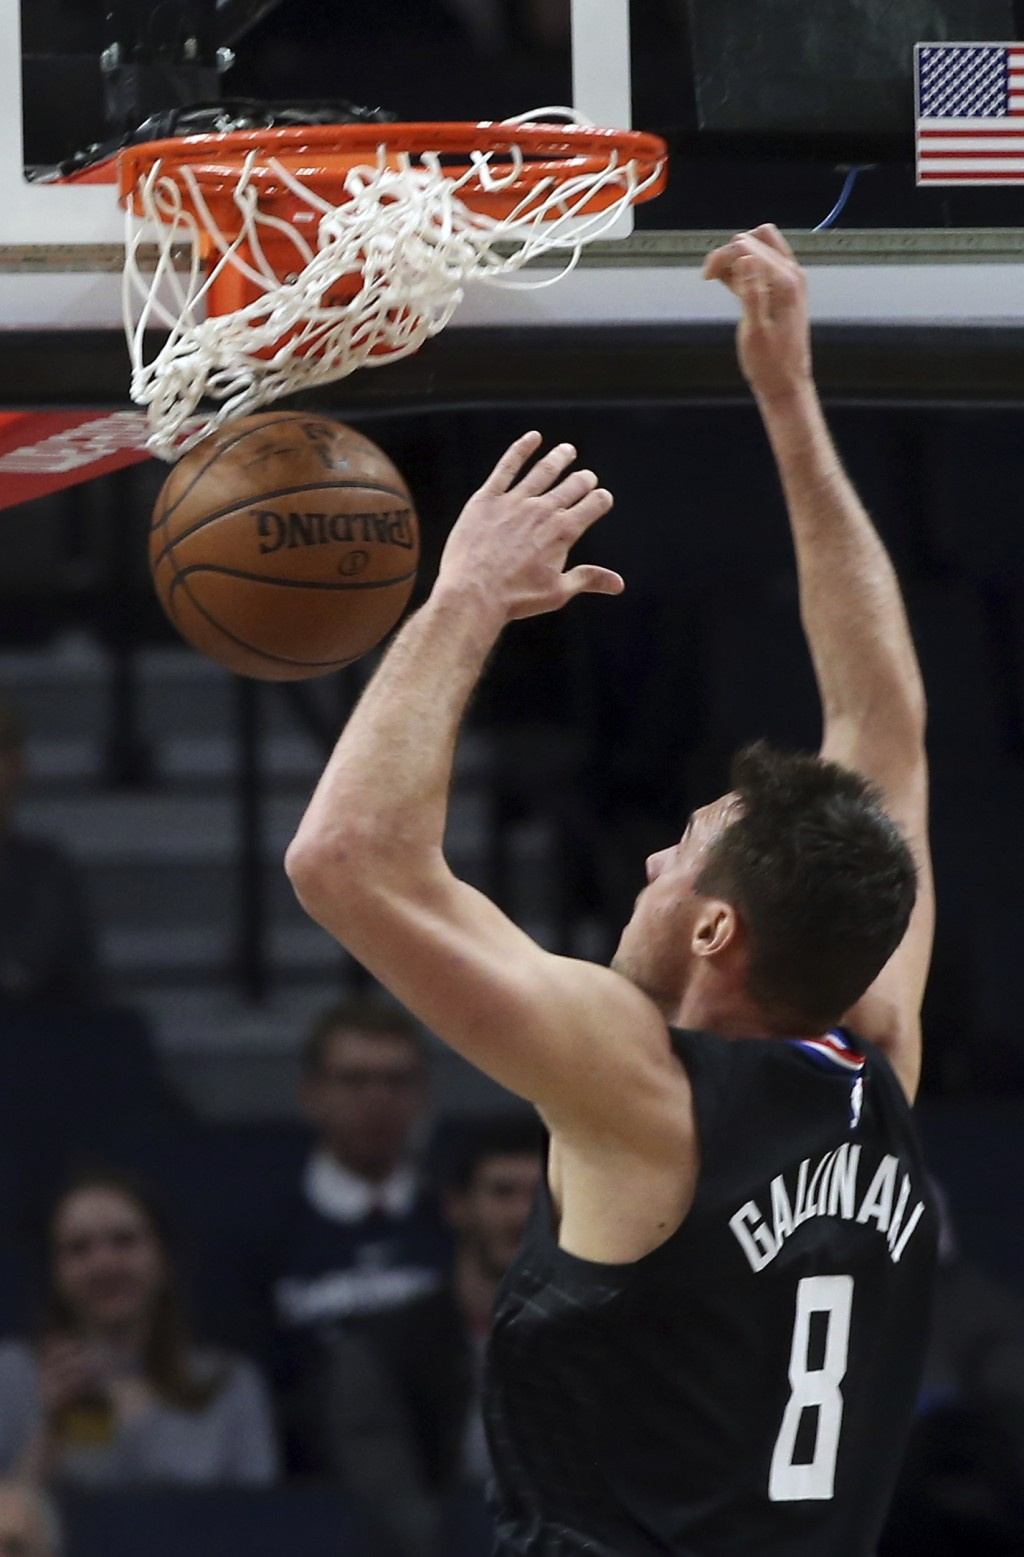 LA Clippers' Danilo Gallinari dunks against the Minnesota Timberwolves in the first half of an NBA basketball game Monday, Feb. 11, 2019, in Minneapol